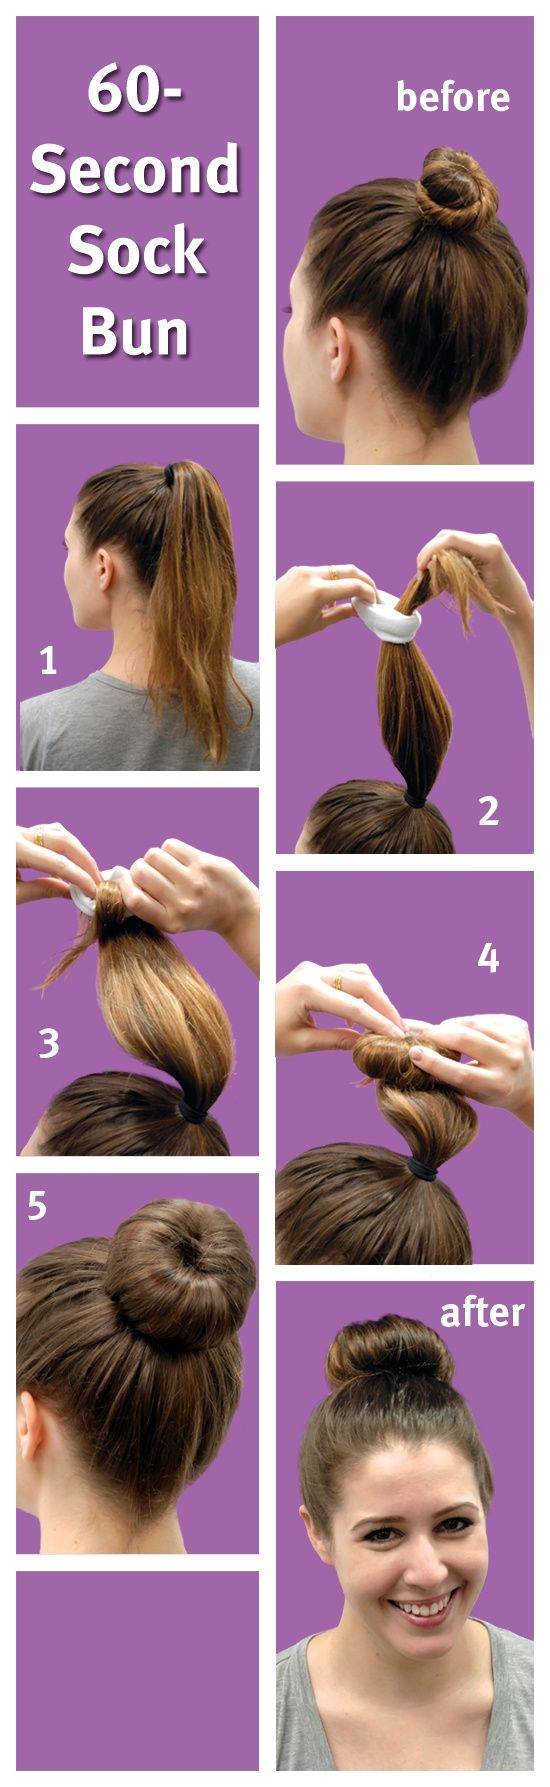 sock bun - Click image to find more Hair & Beauty Pinterest pins